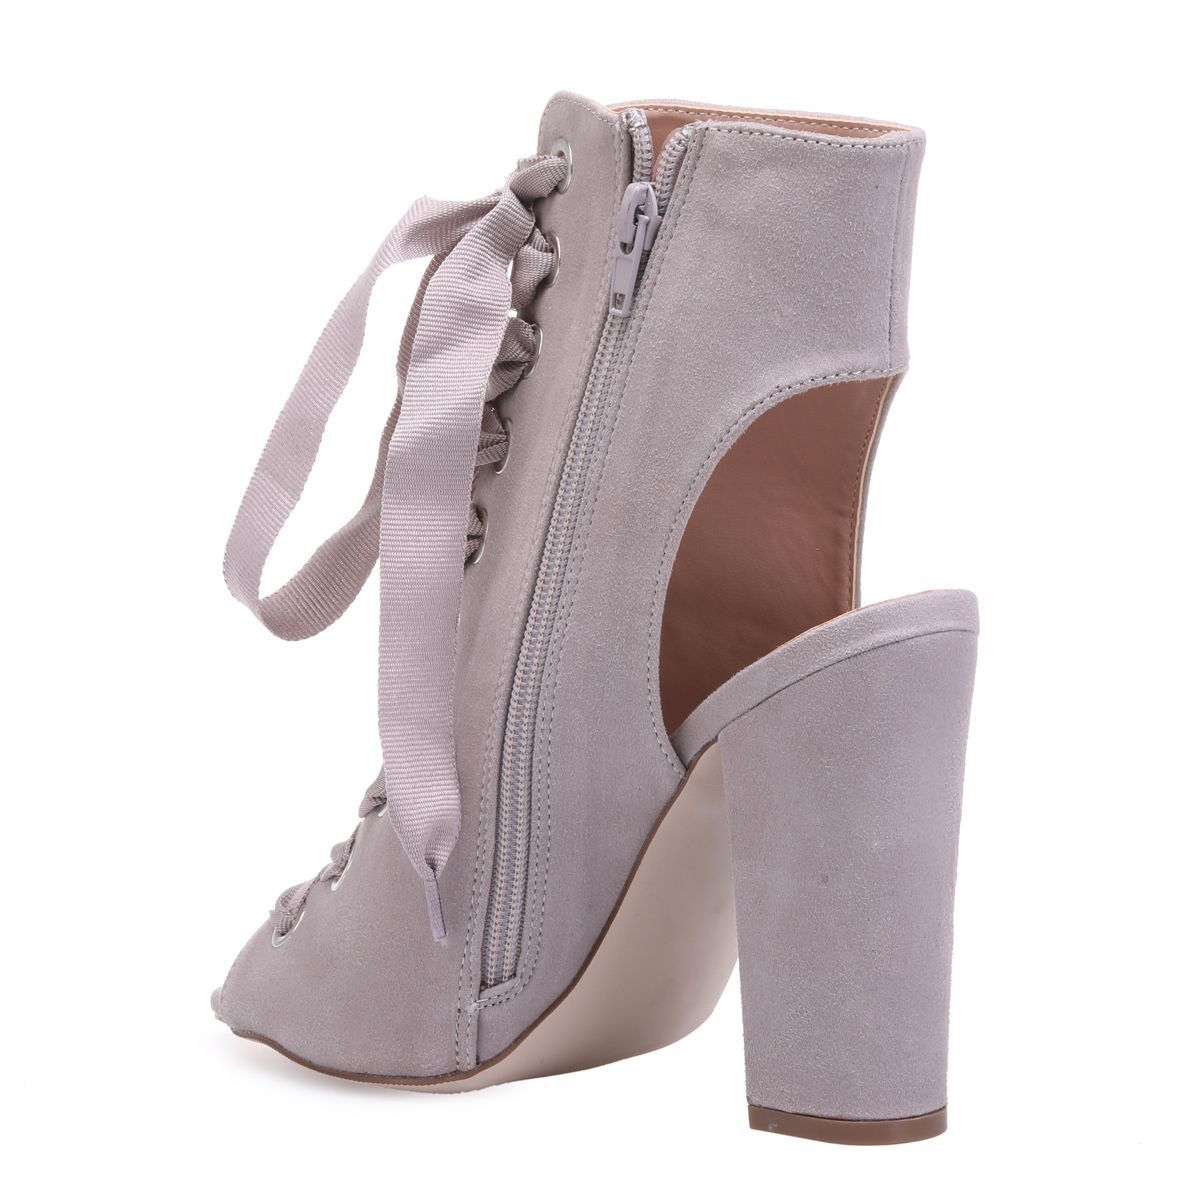 Bottines peep toes gris clair à lacets